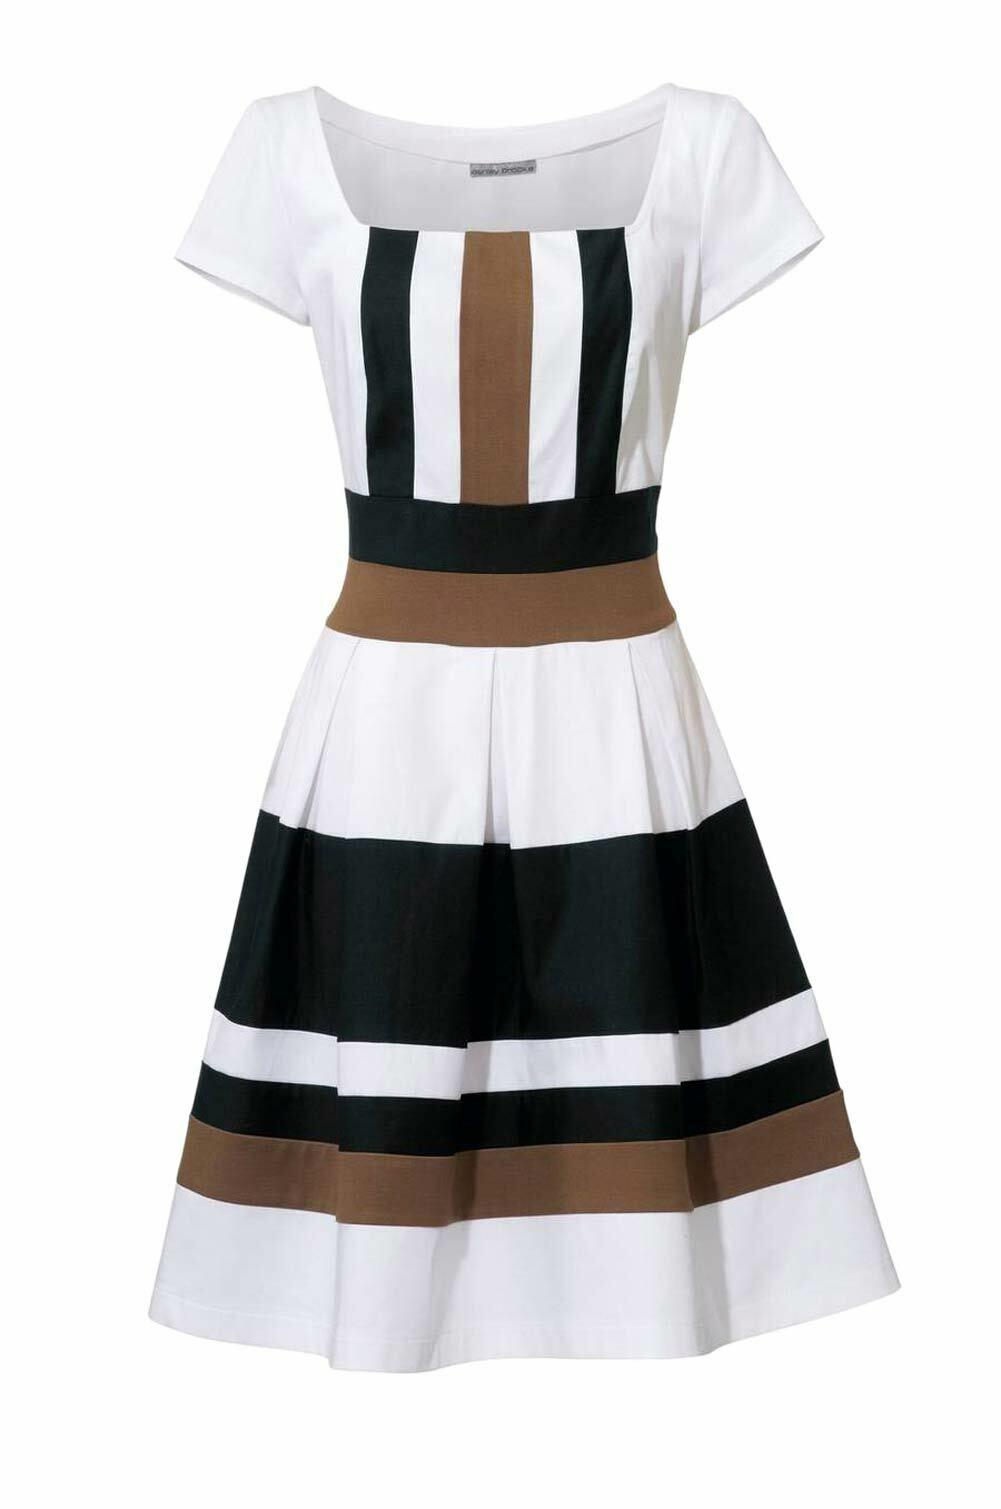 TCJ Ashley Brooke Sexy Kleid Designerkleid Sommerkleid  Prinzesskleid 36-52